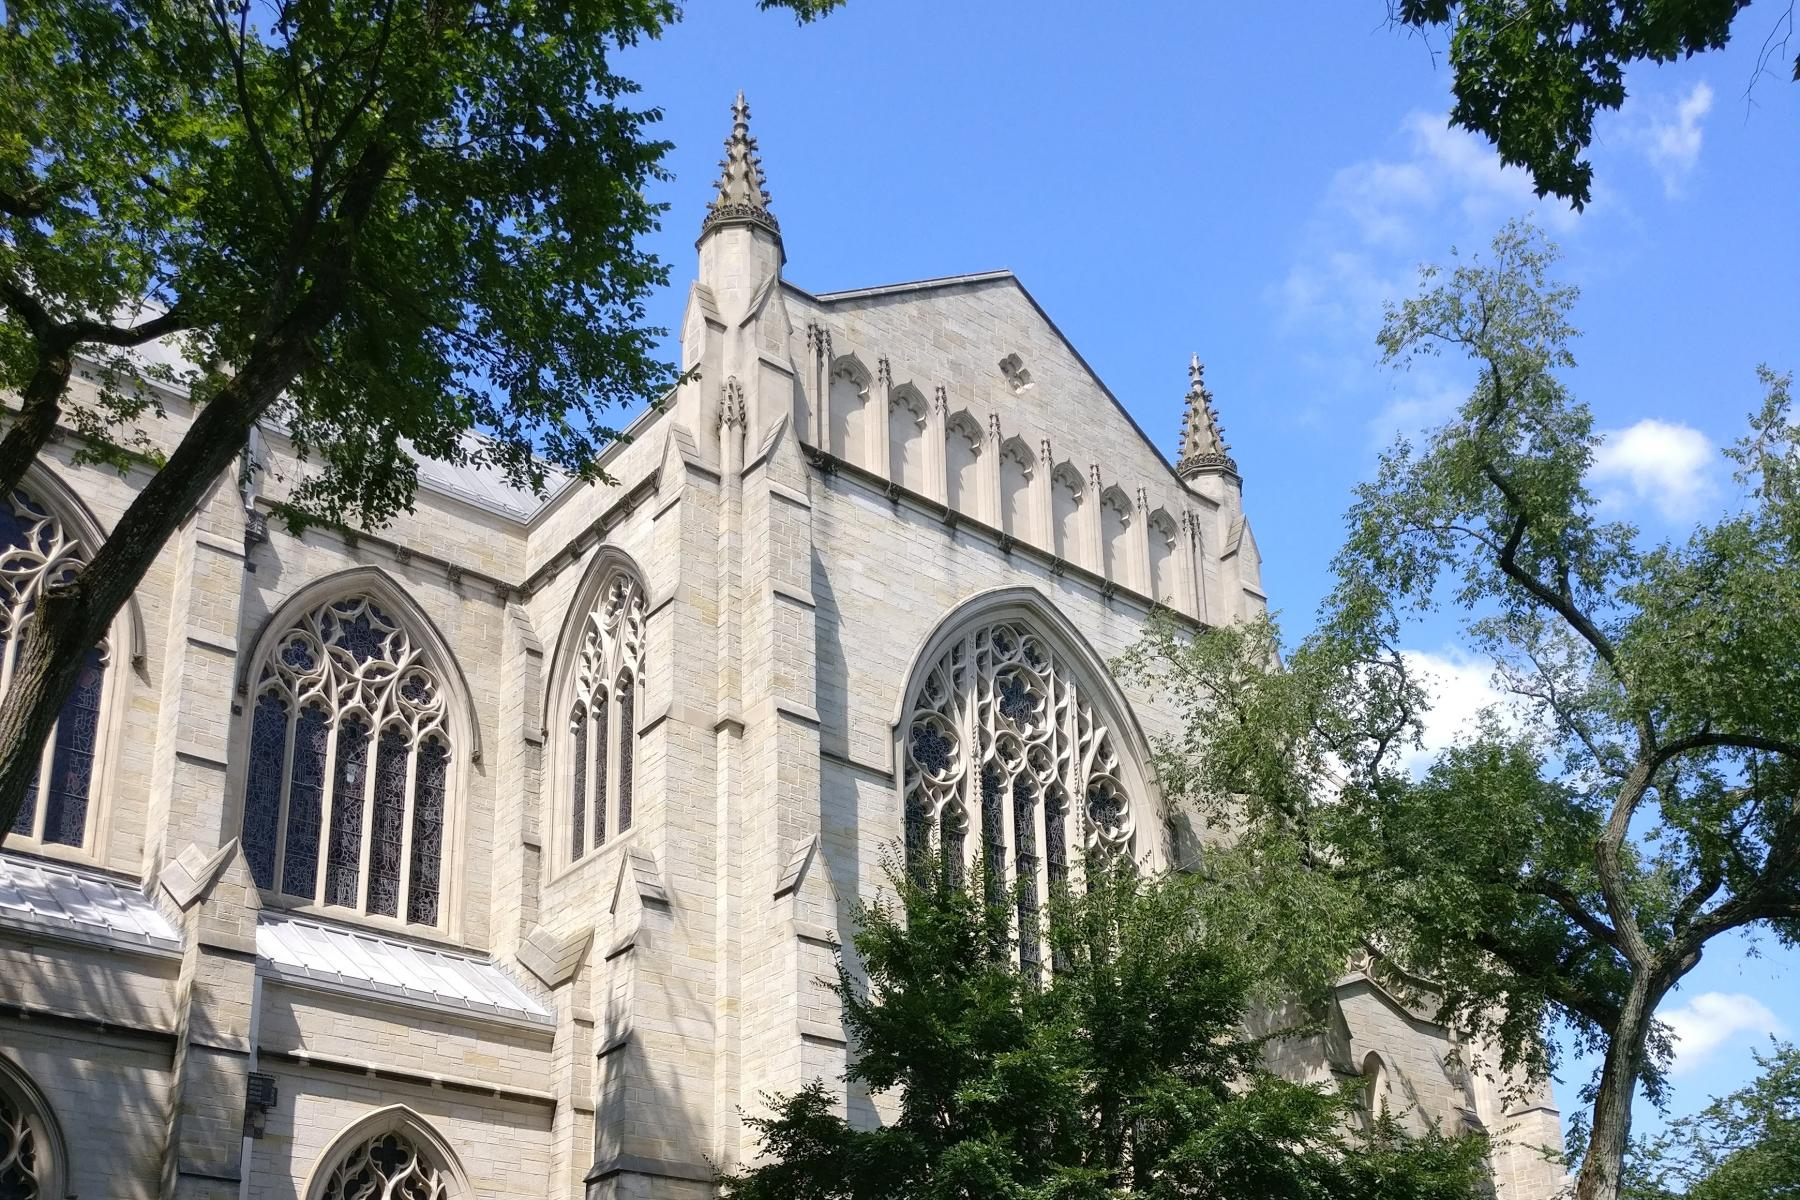 A photo of the side of the Chapel on a sunny day, framed by trees.